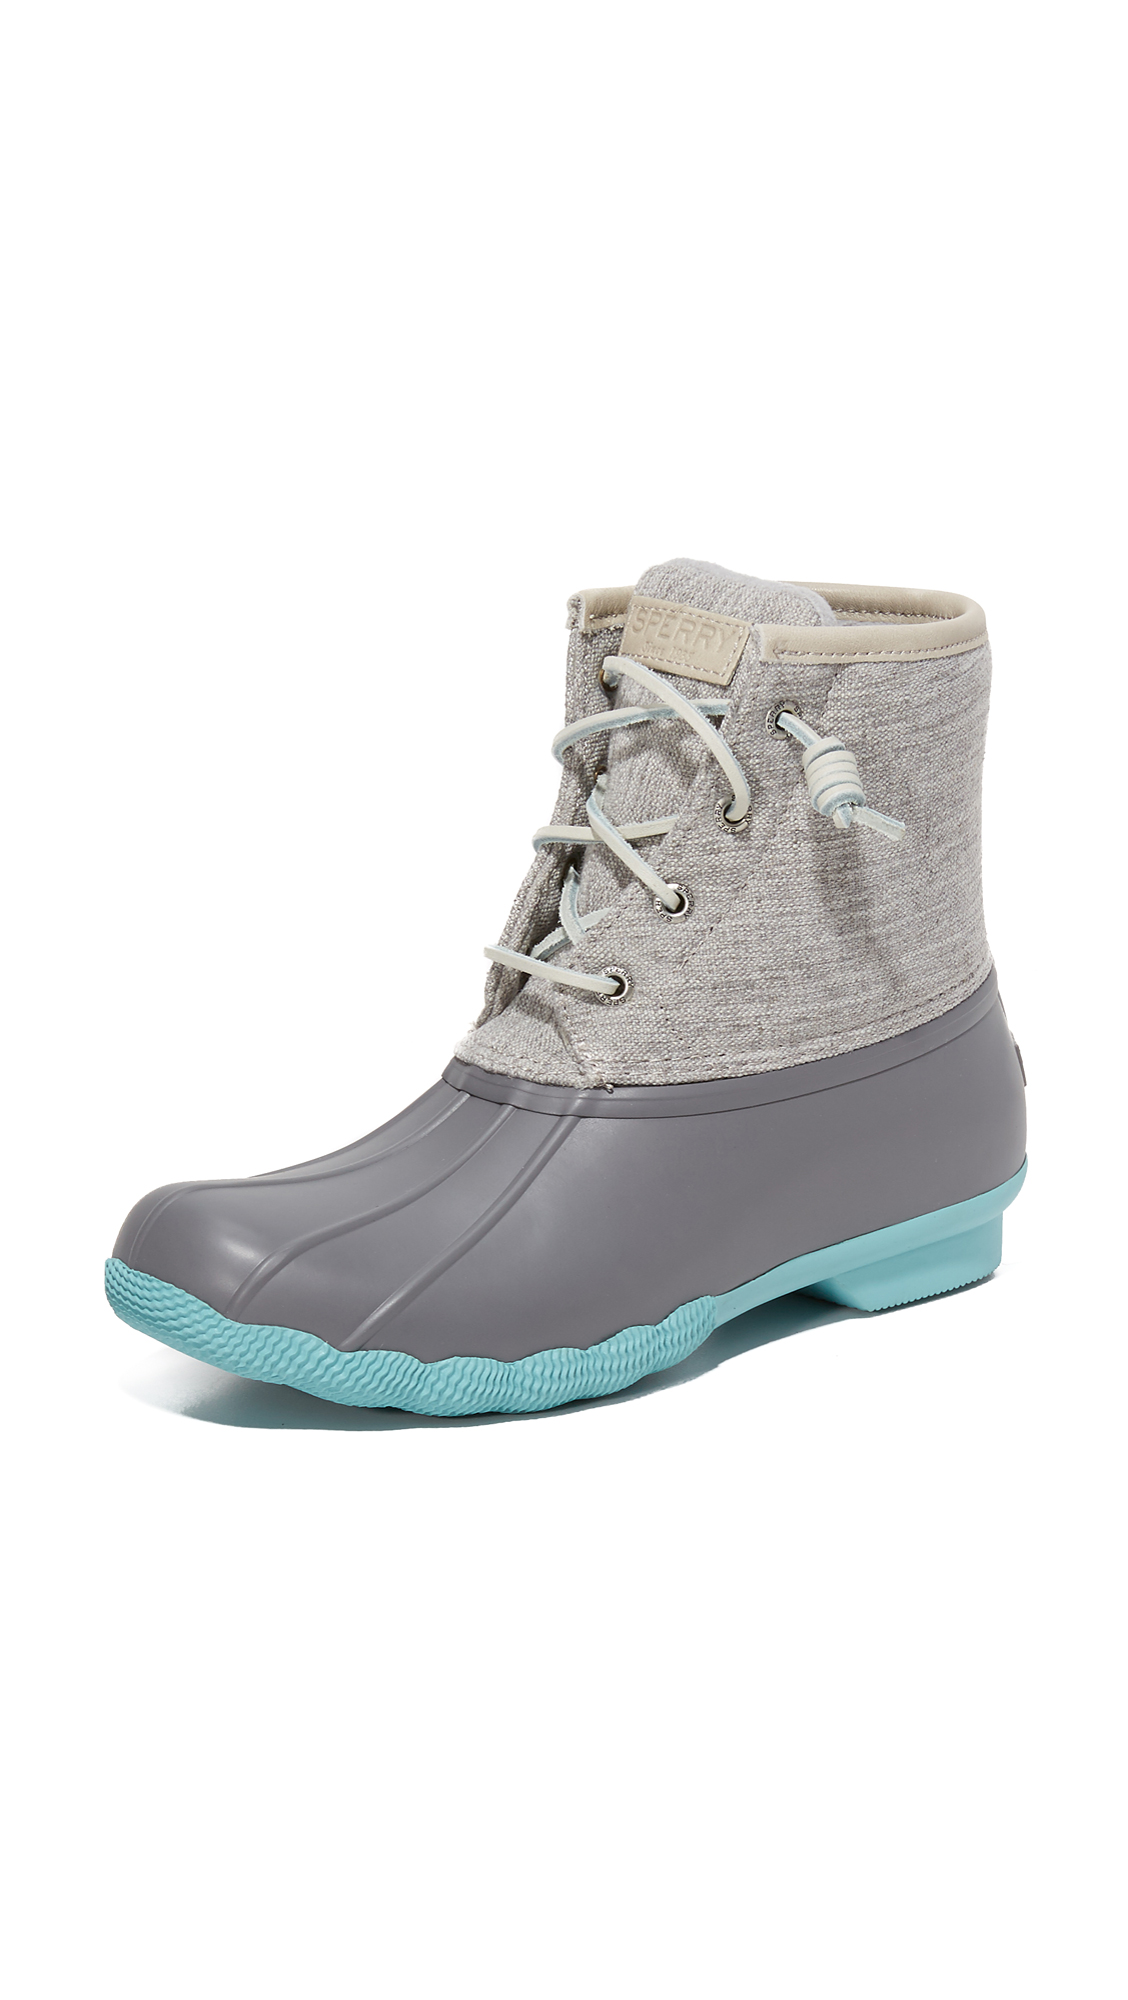 sperry female sperry saltwater booties greynatural